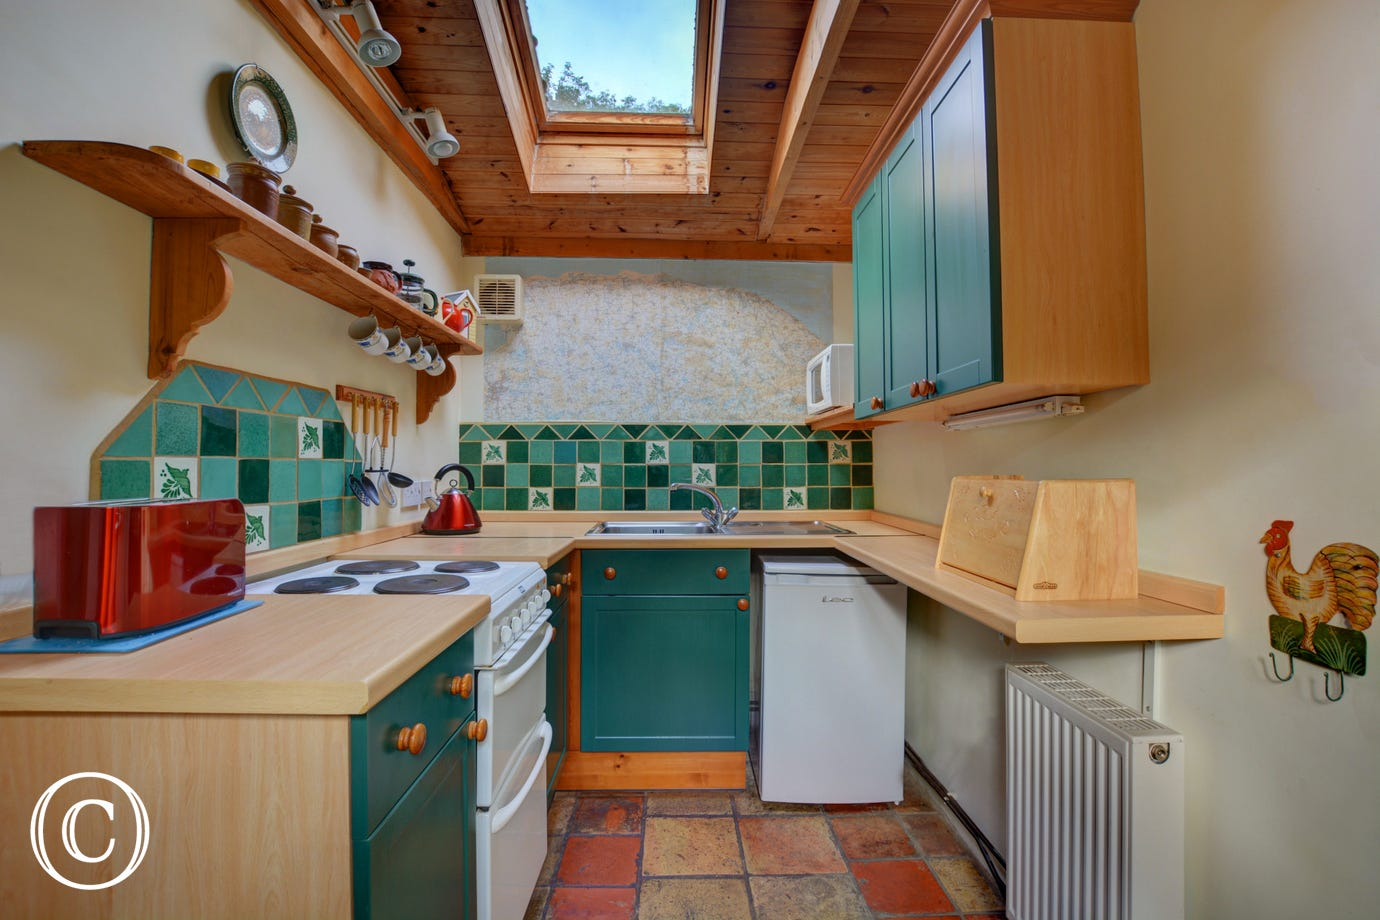 Compact kitchen with an electric cooker and other appliances and the added bonus of a cloakroom